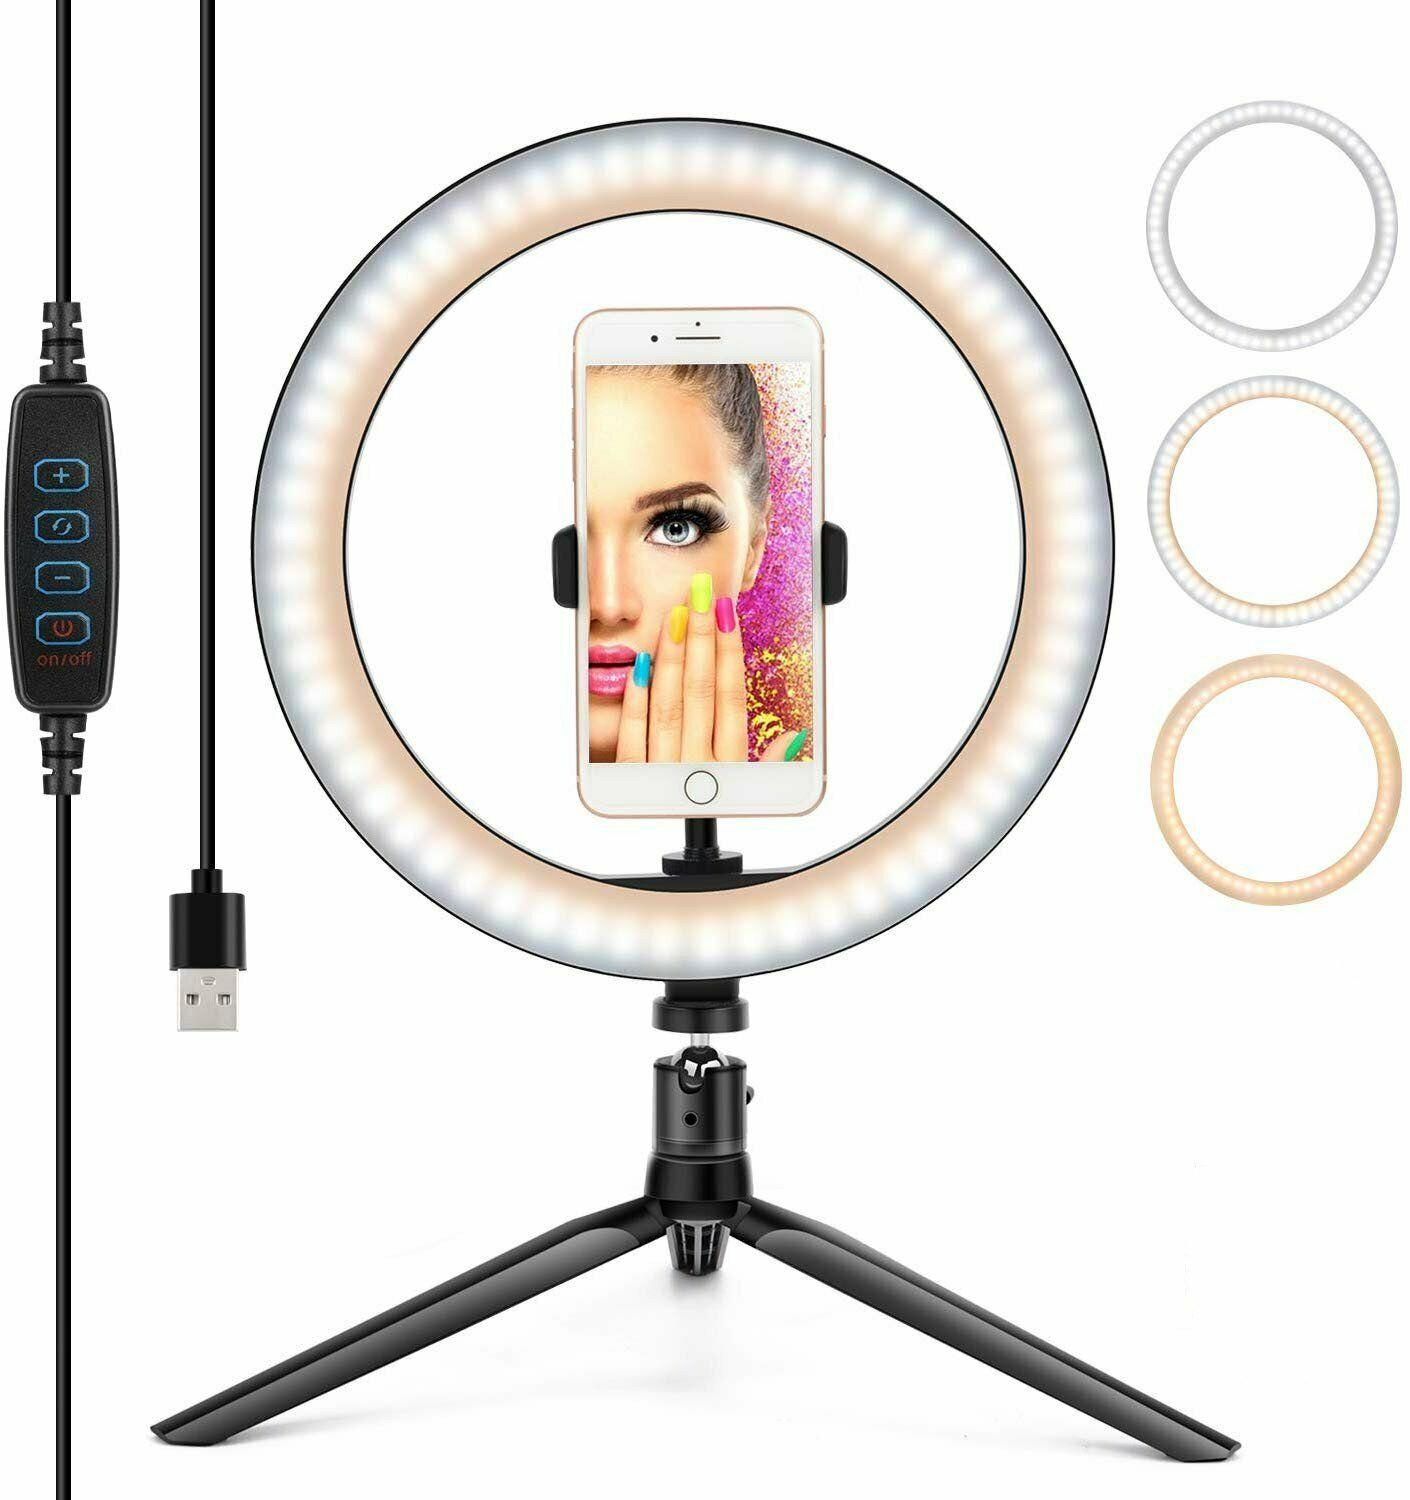 26CM USB Ring Light 5W 128Beads Photo Dimmable Studio Camera Makeup Light Kit Phone Video Light Lamp with Tripod for Smartphone